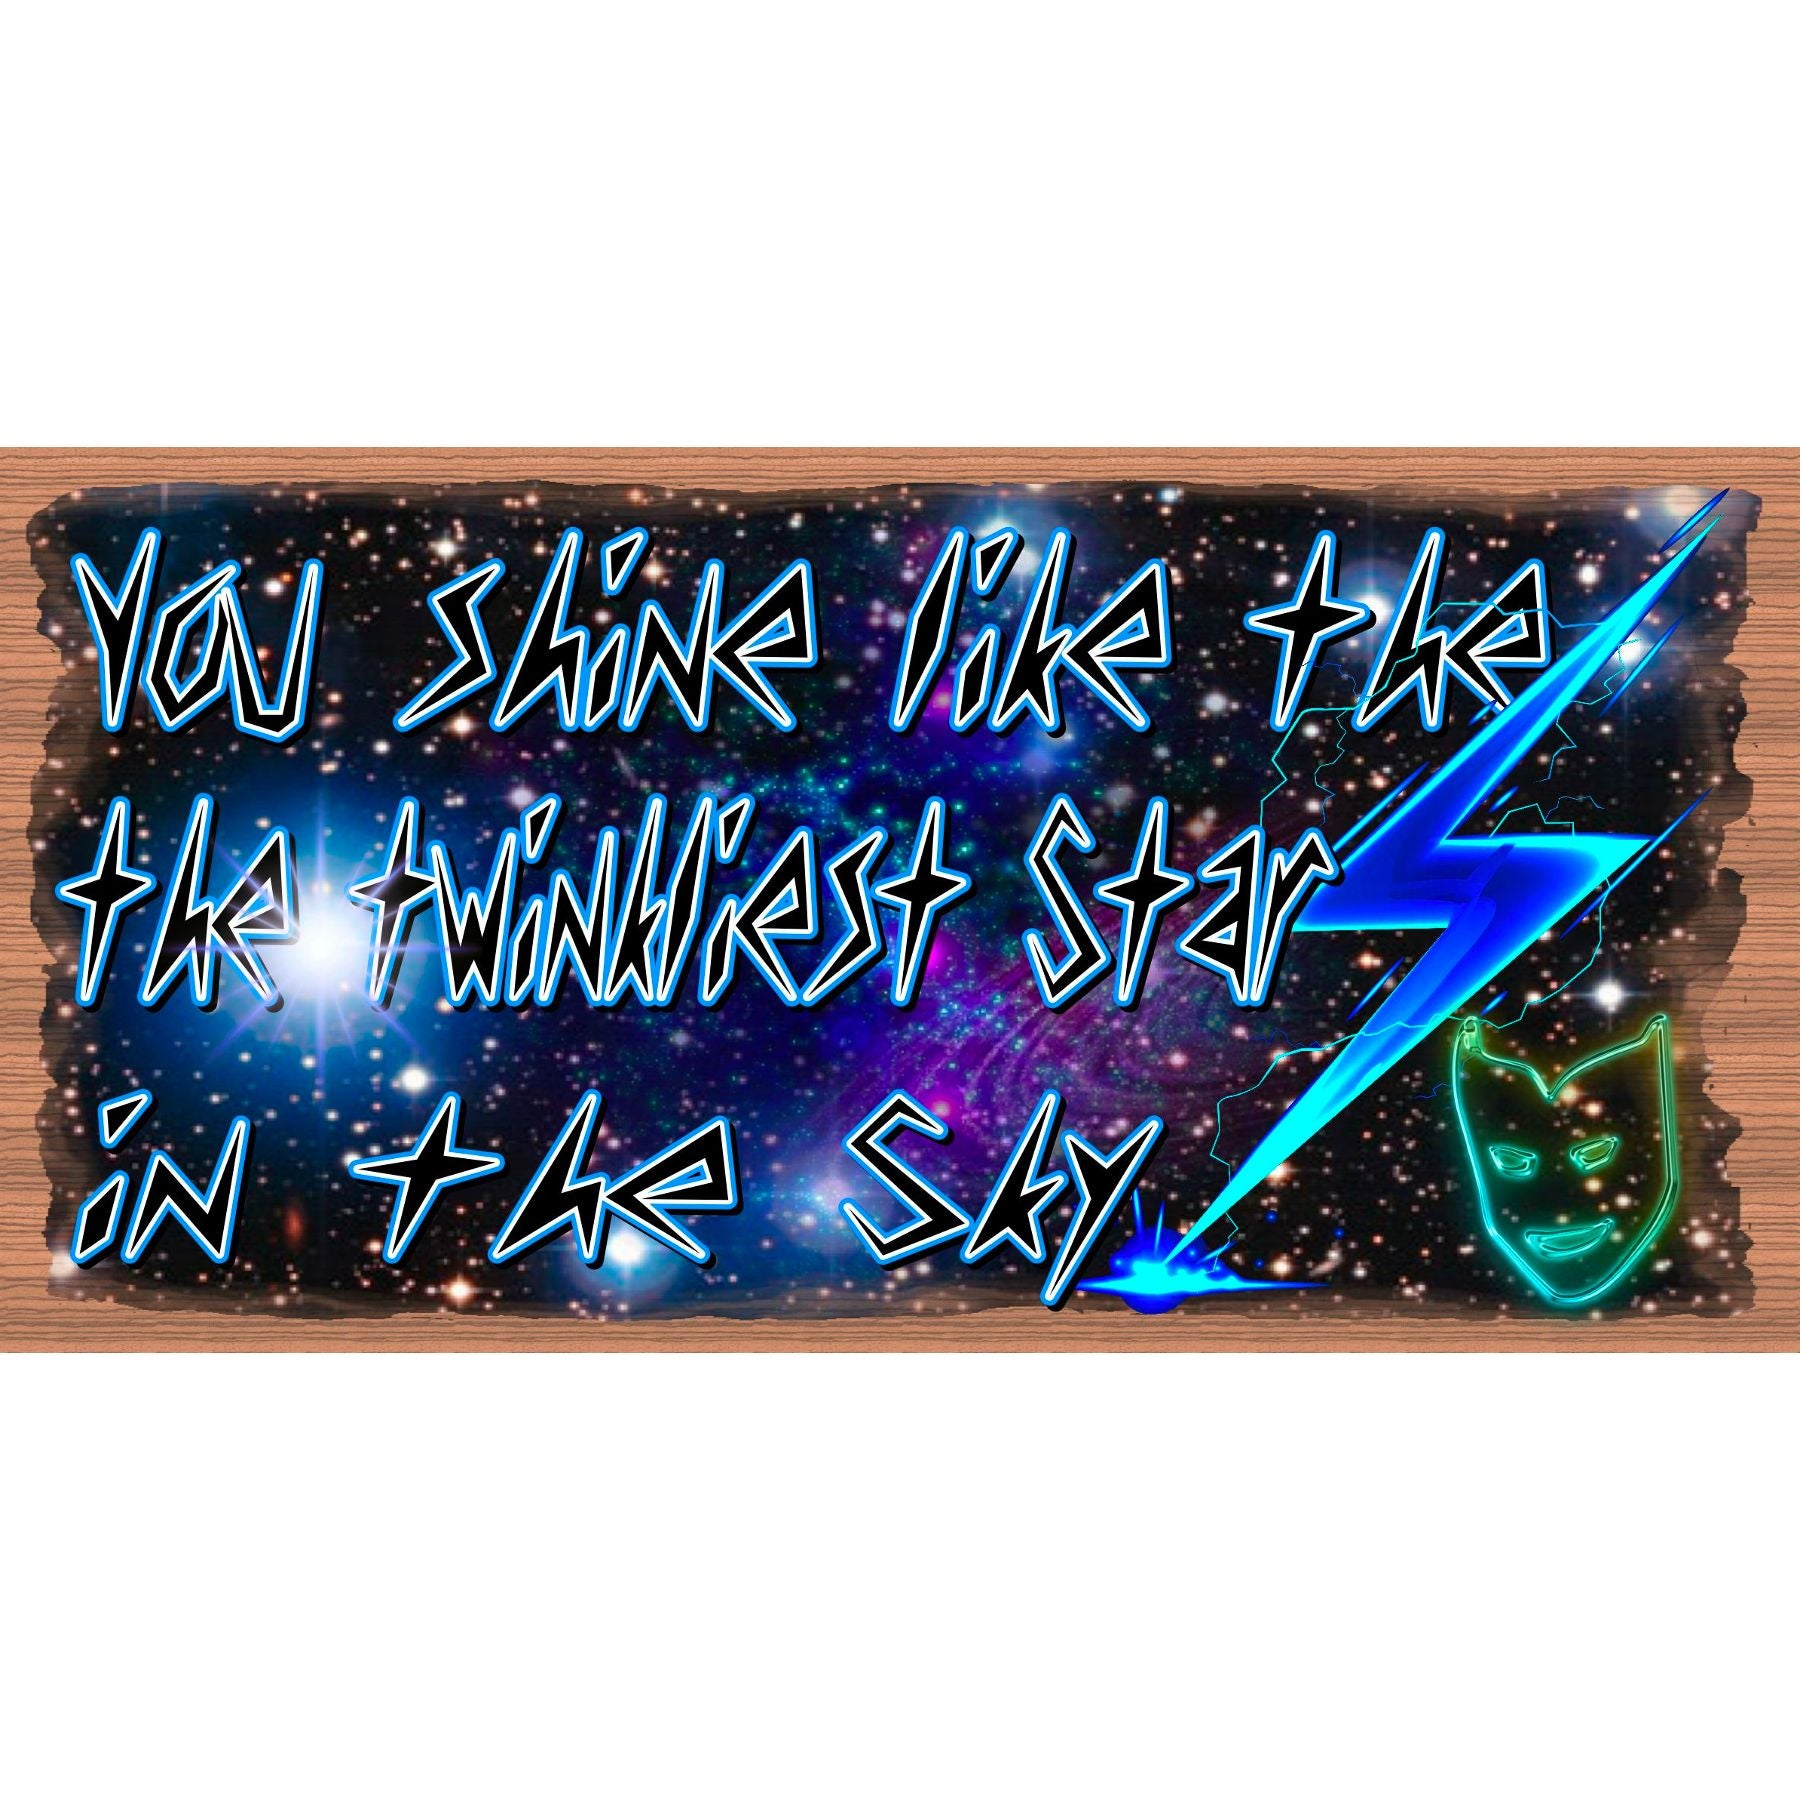 Friend Wood Signs -You Shine  - GS -2999